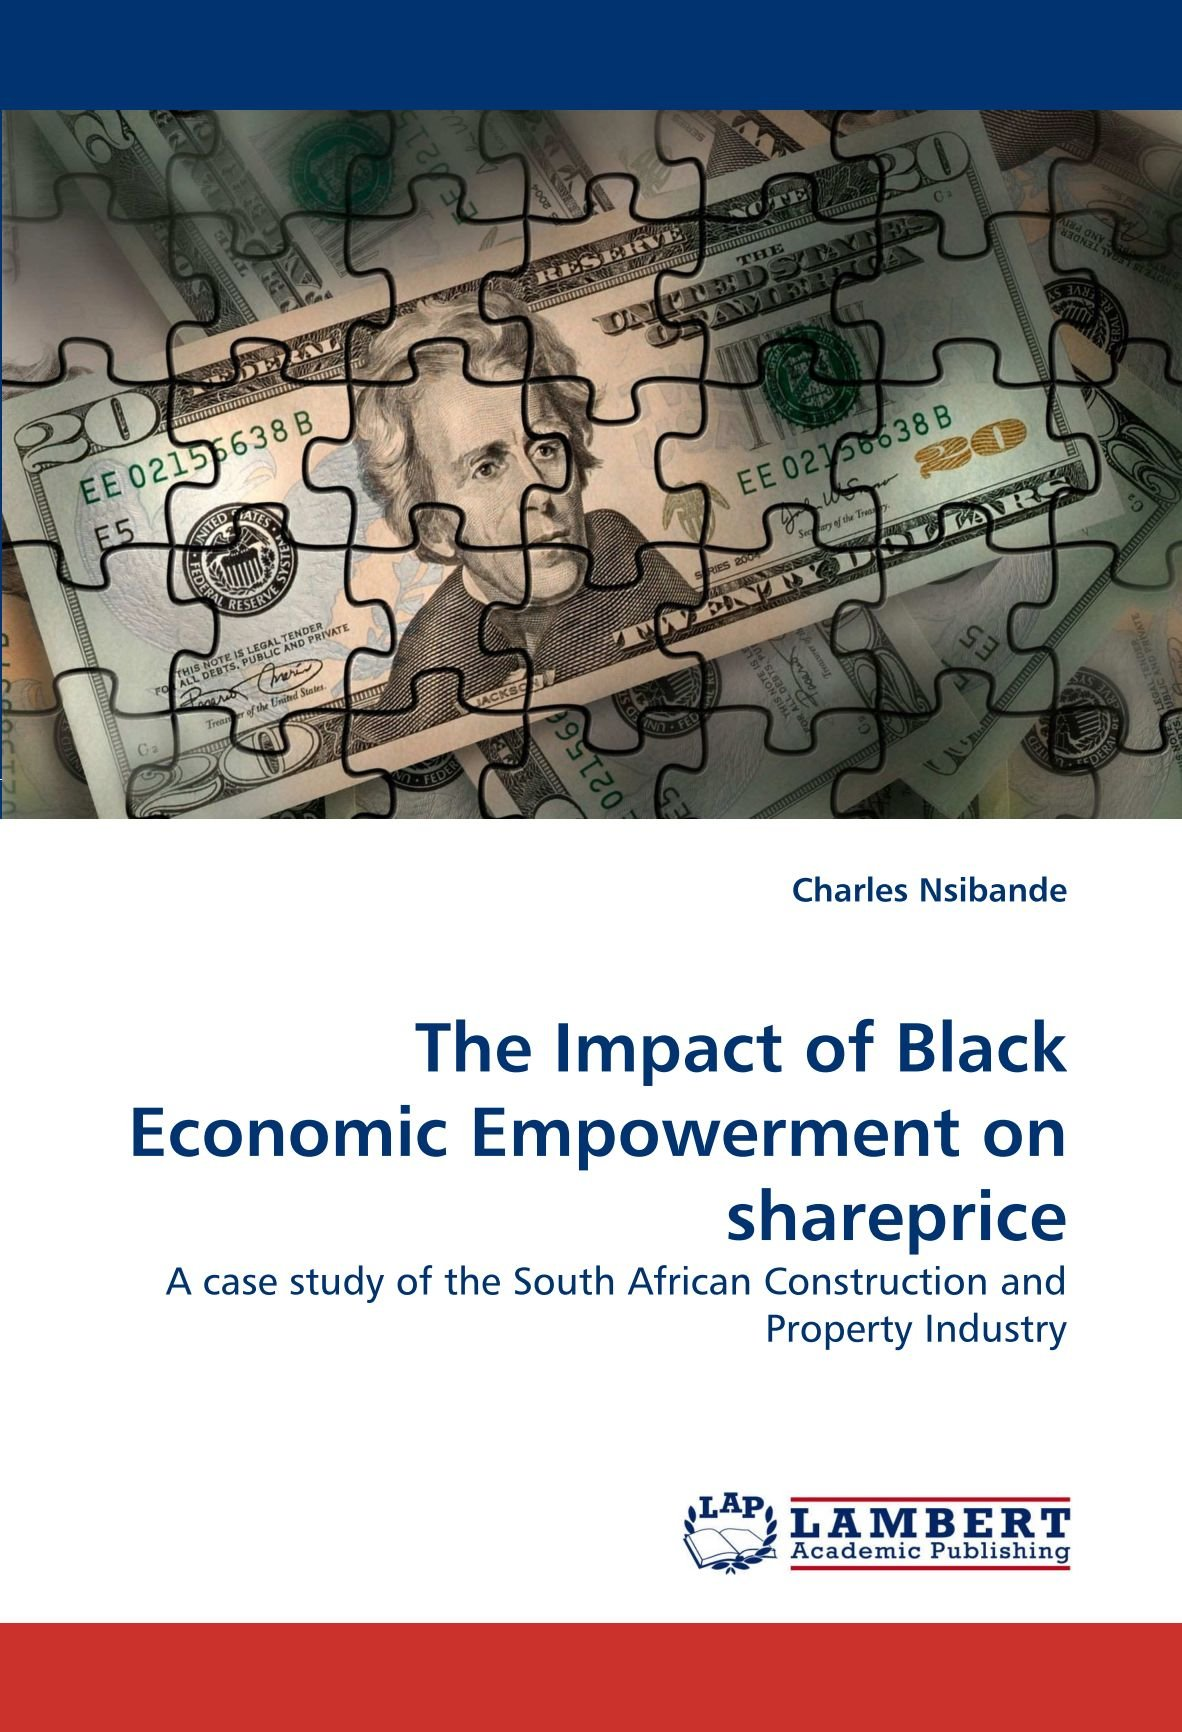 Download The Impact of Black Economic Empowerment on shareprice: A case study of the South African Construction and Property Industry PDF ePub fb2 book